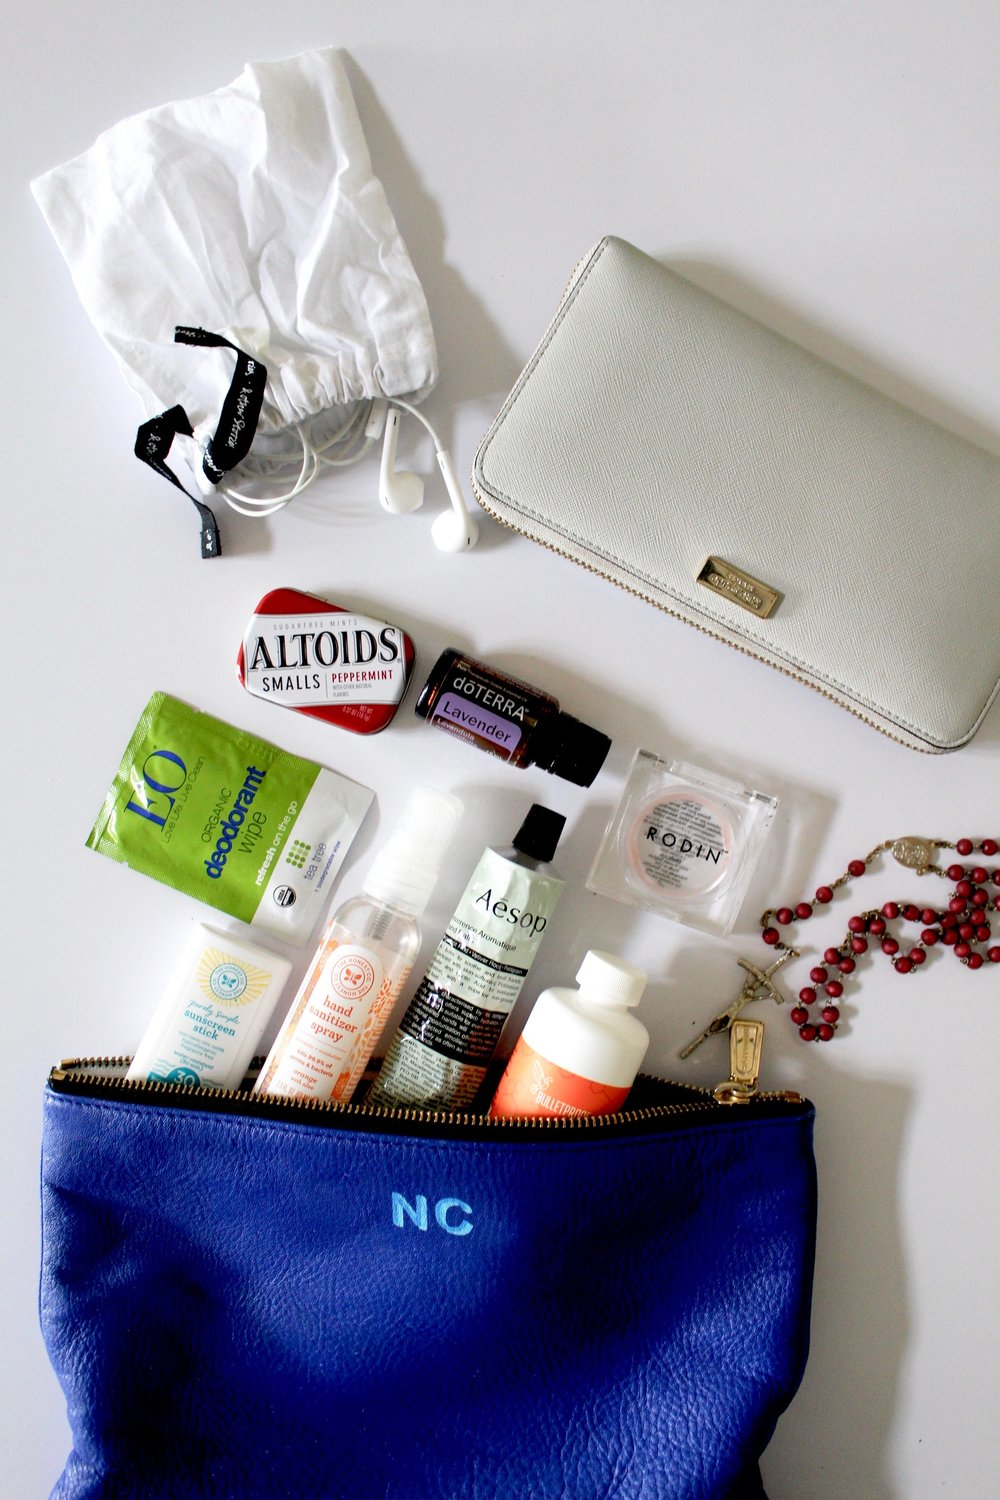 REBECCA MINKOFF POUCH  /  HONEST SUNSCREEN STICK  /  HONEST HAND SANITIZER SPRAY  /  AESOP HAND CREAM  /  BULLETPROOF BRAIN OCTANE OIL  /  EO ORGANIC DEODORANT WIPE   / DOTERRA LAVENDER ESSENTIAL OIL /  RODIN LIP BALM  /   KATE SPADE WALLET